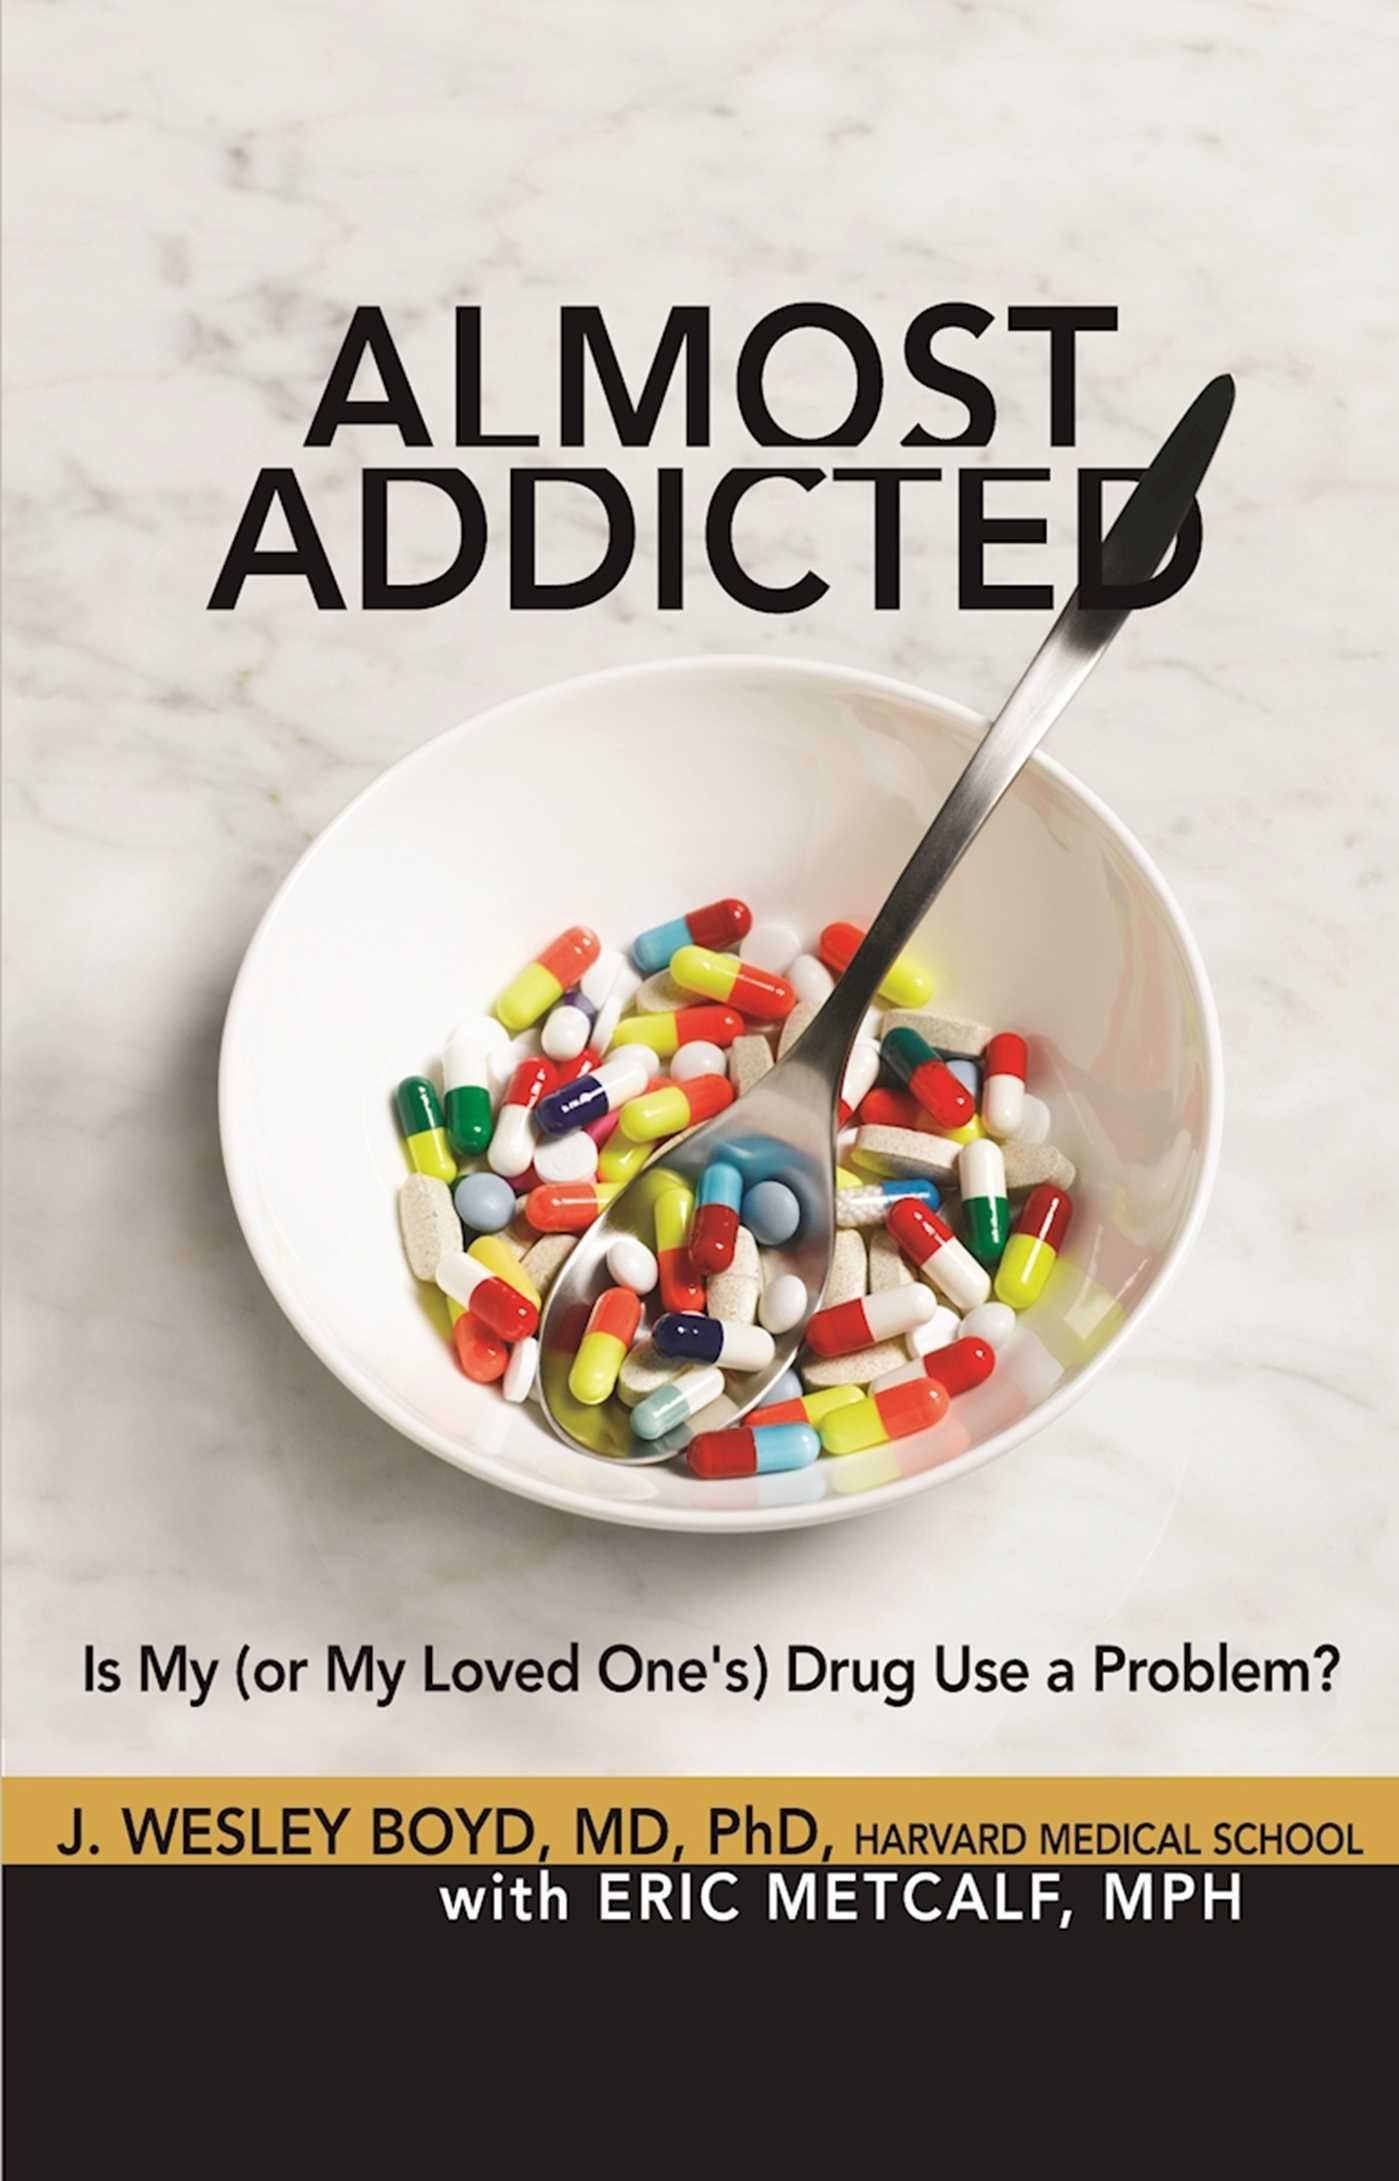 Almost Addicted: Is My (or My Loved One's) Drug Use a Problem? (The Almost Effect) ebook